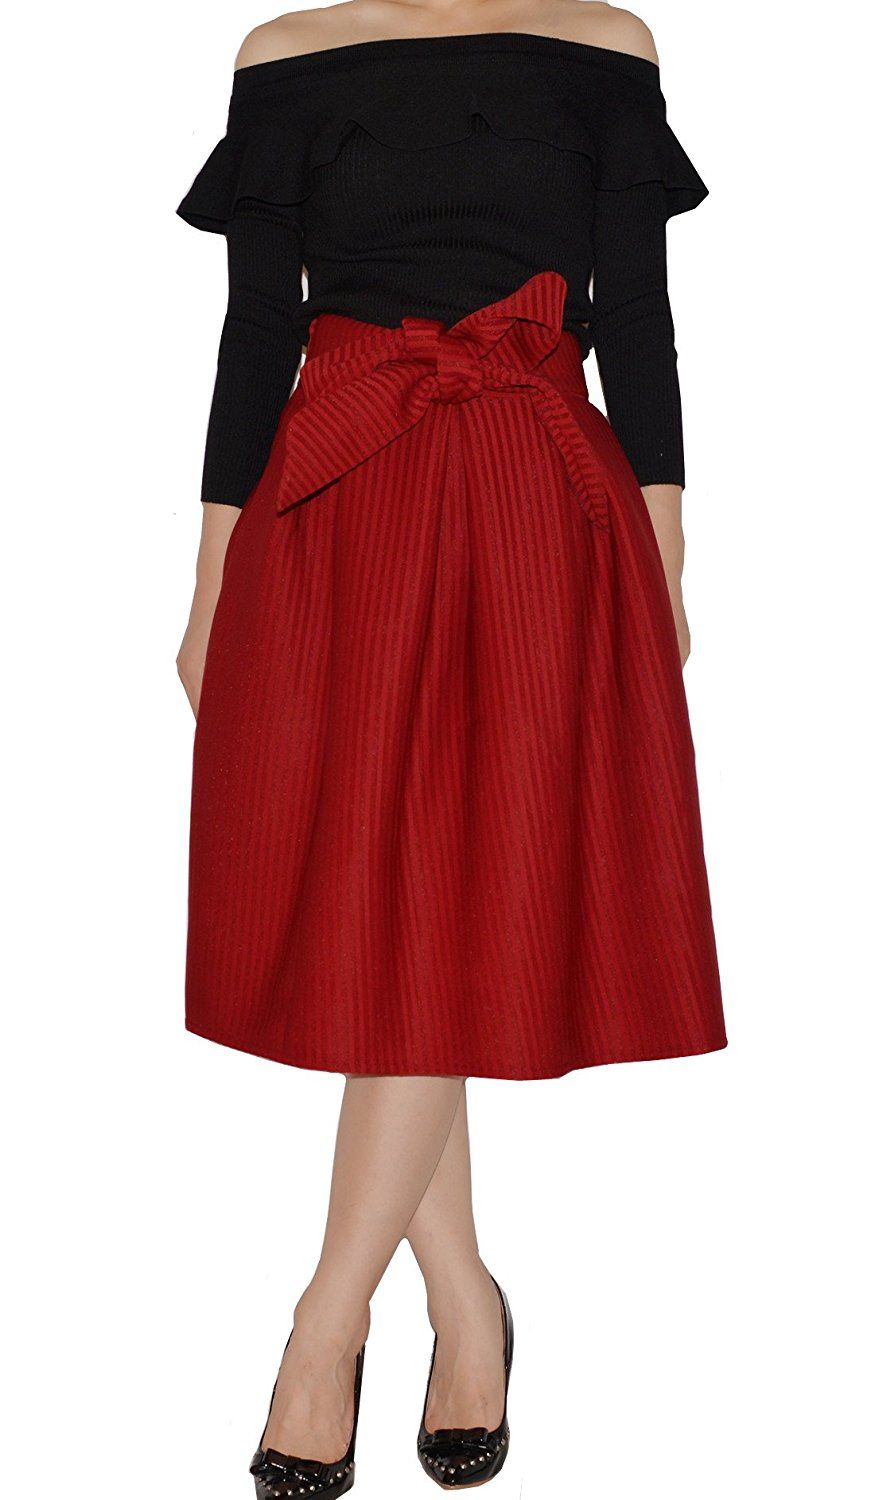 YSJ Women's Midi Skirt Striped High Waist A-Line Pleated Party Skirts ** Be sure to check out this awesome product.